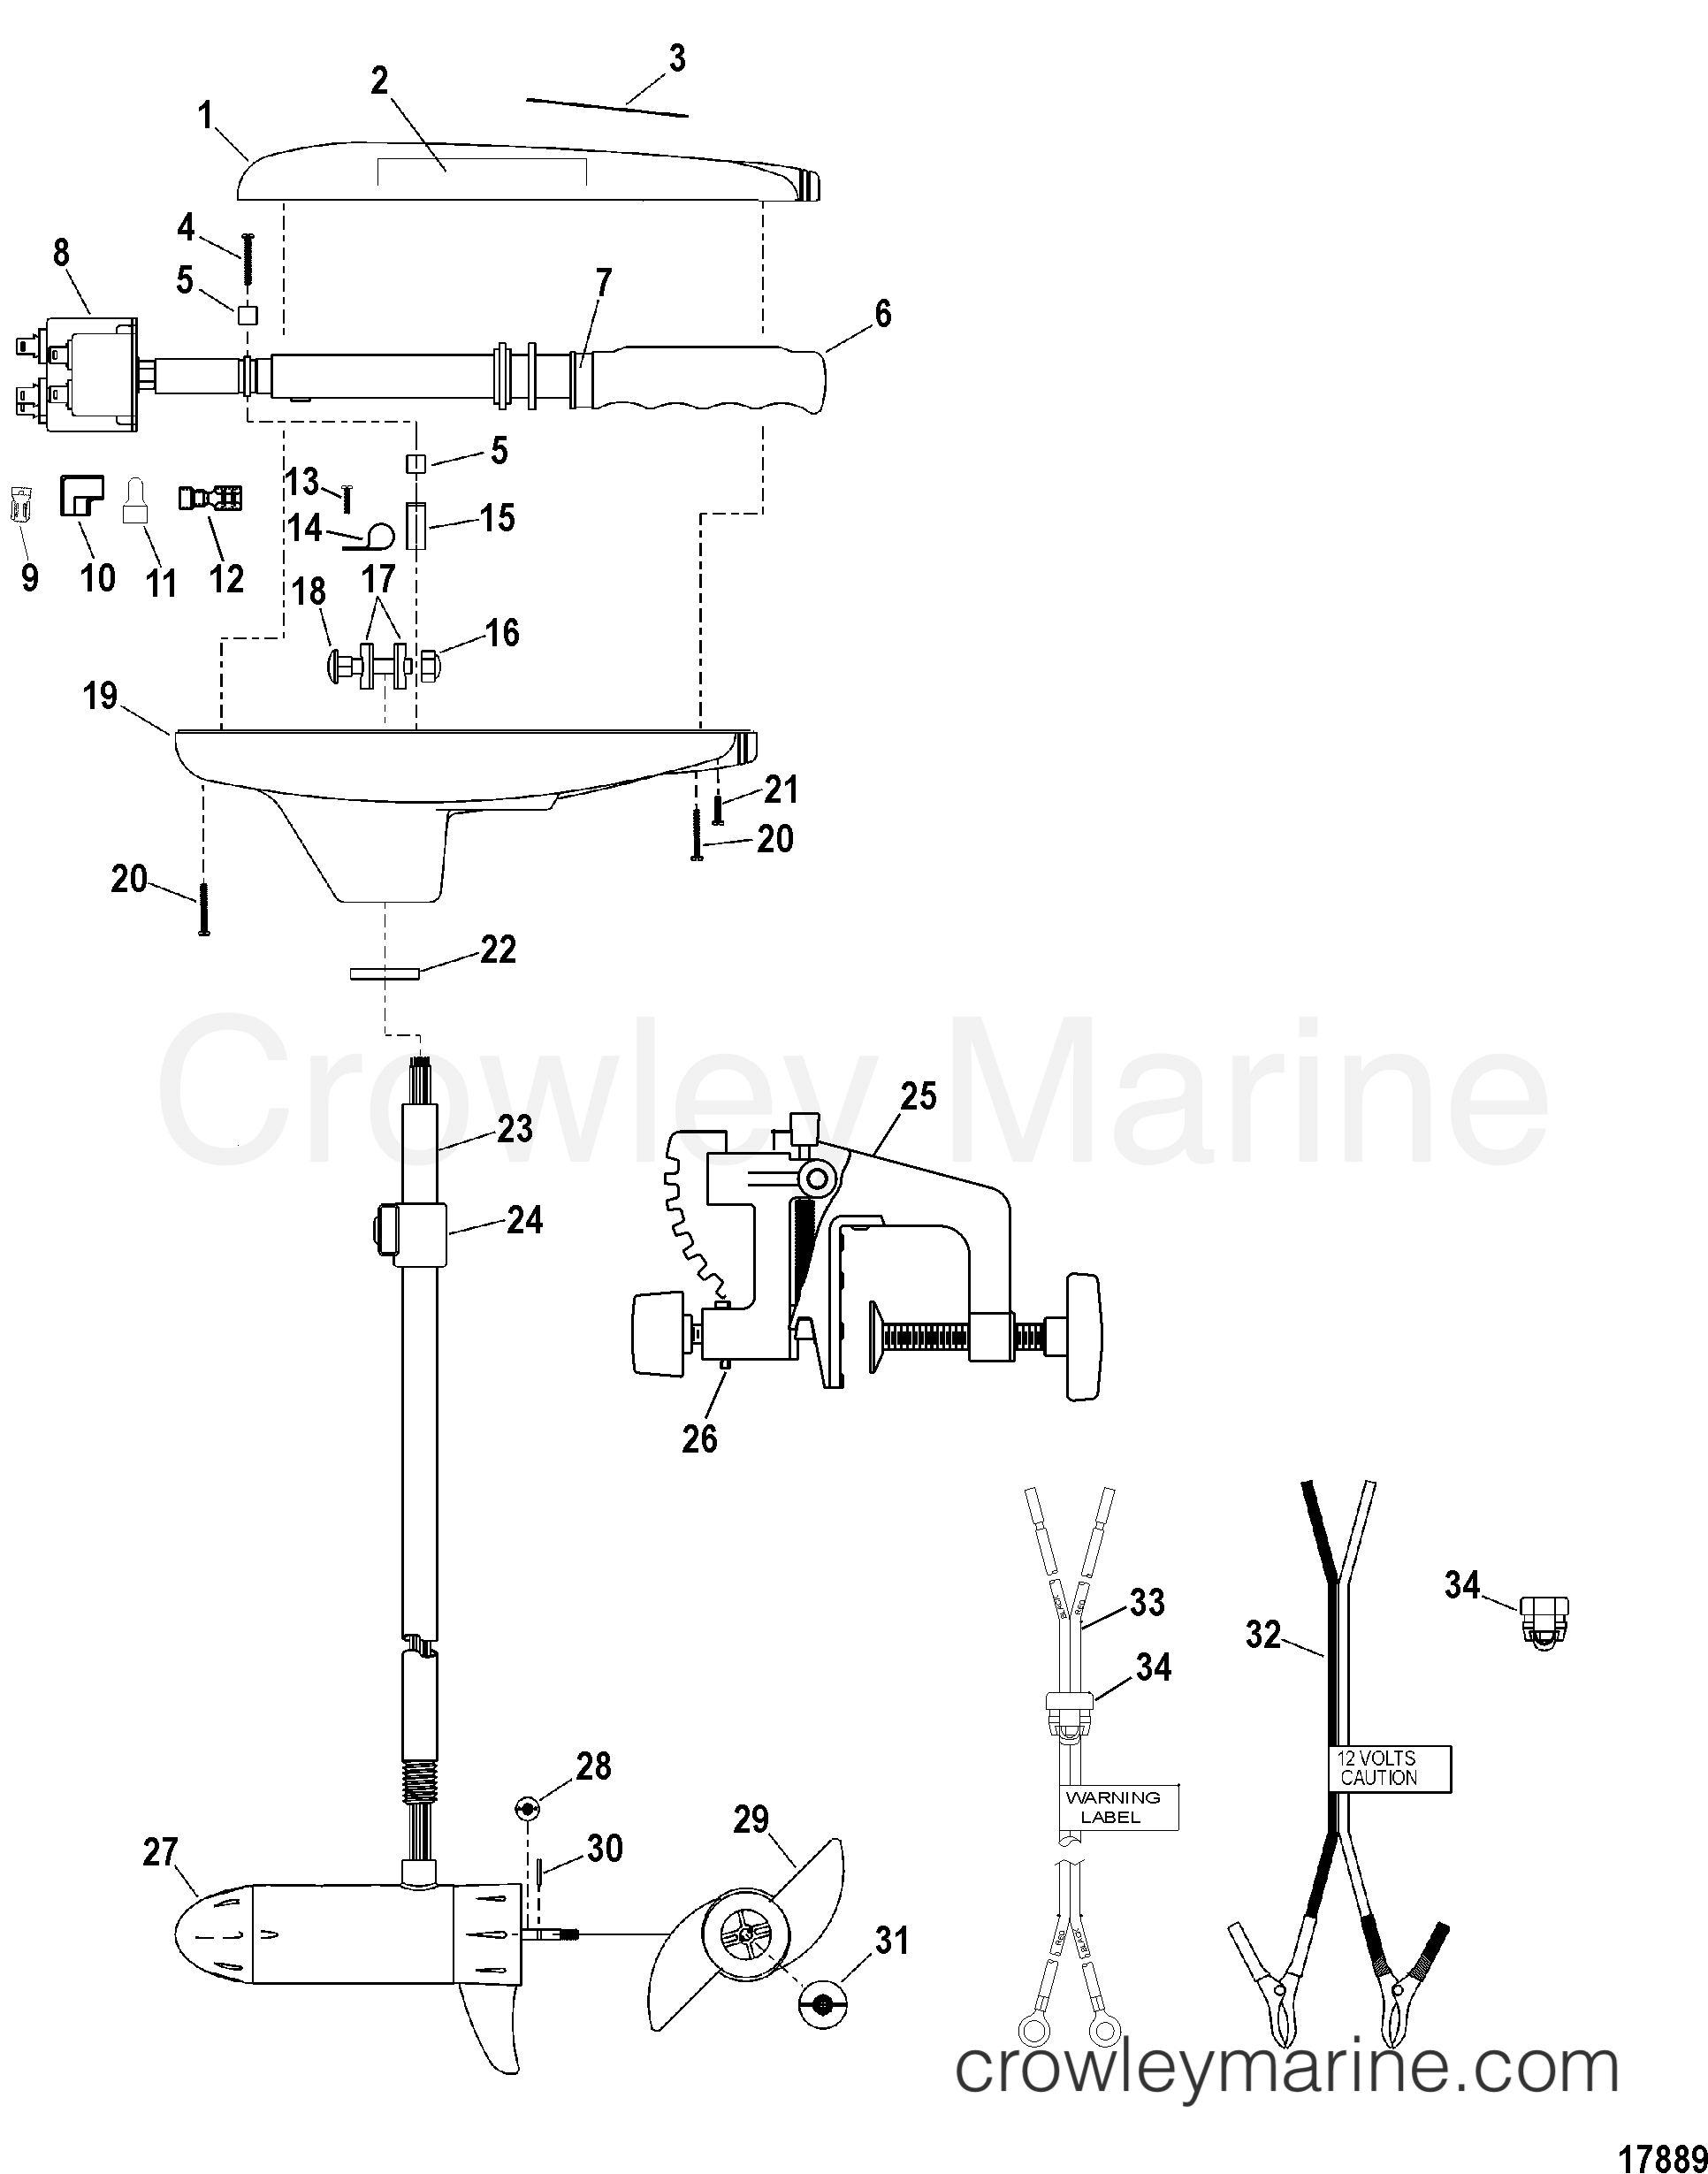 o4xTn4xJ motorguide wiring diagram motorguide parts diagram \u2022 free wiring mercury thruster trolling motor wiring diagram at reclaimingppi.co